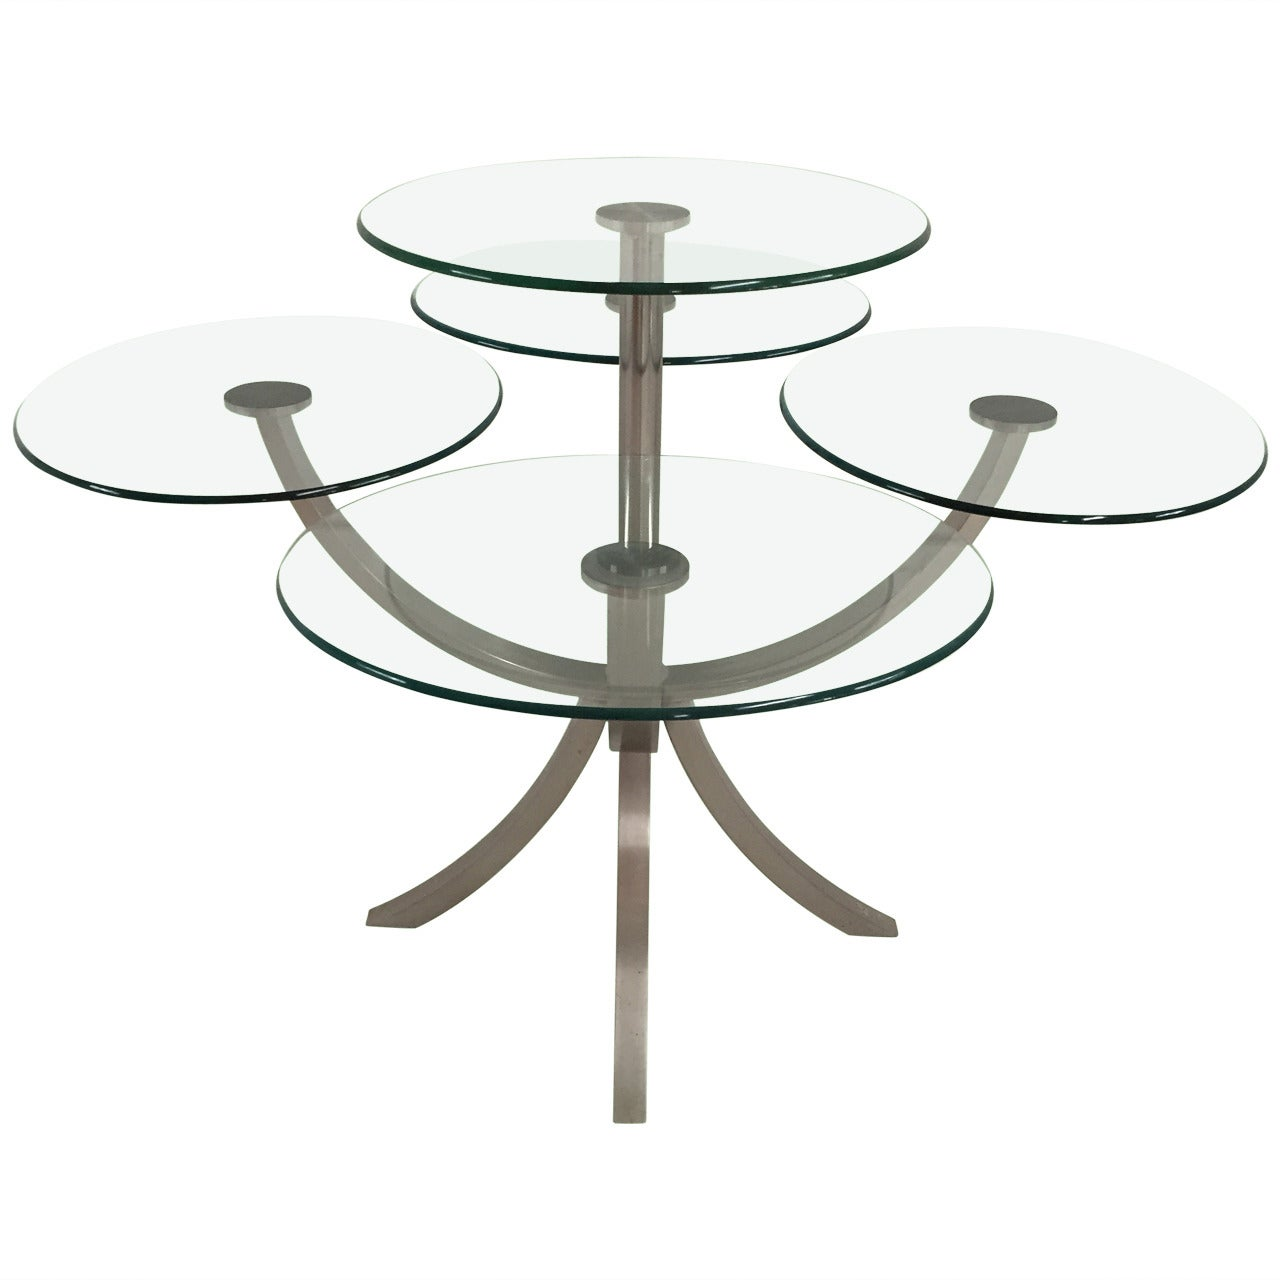 "DIA, Design Institute of America ""Dinner for Four"" Dining Table"